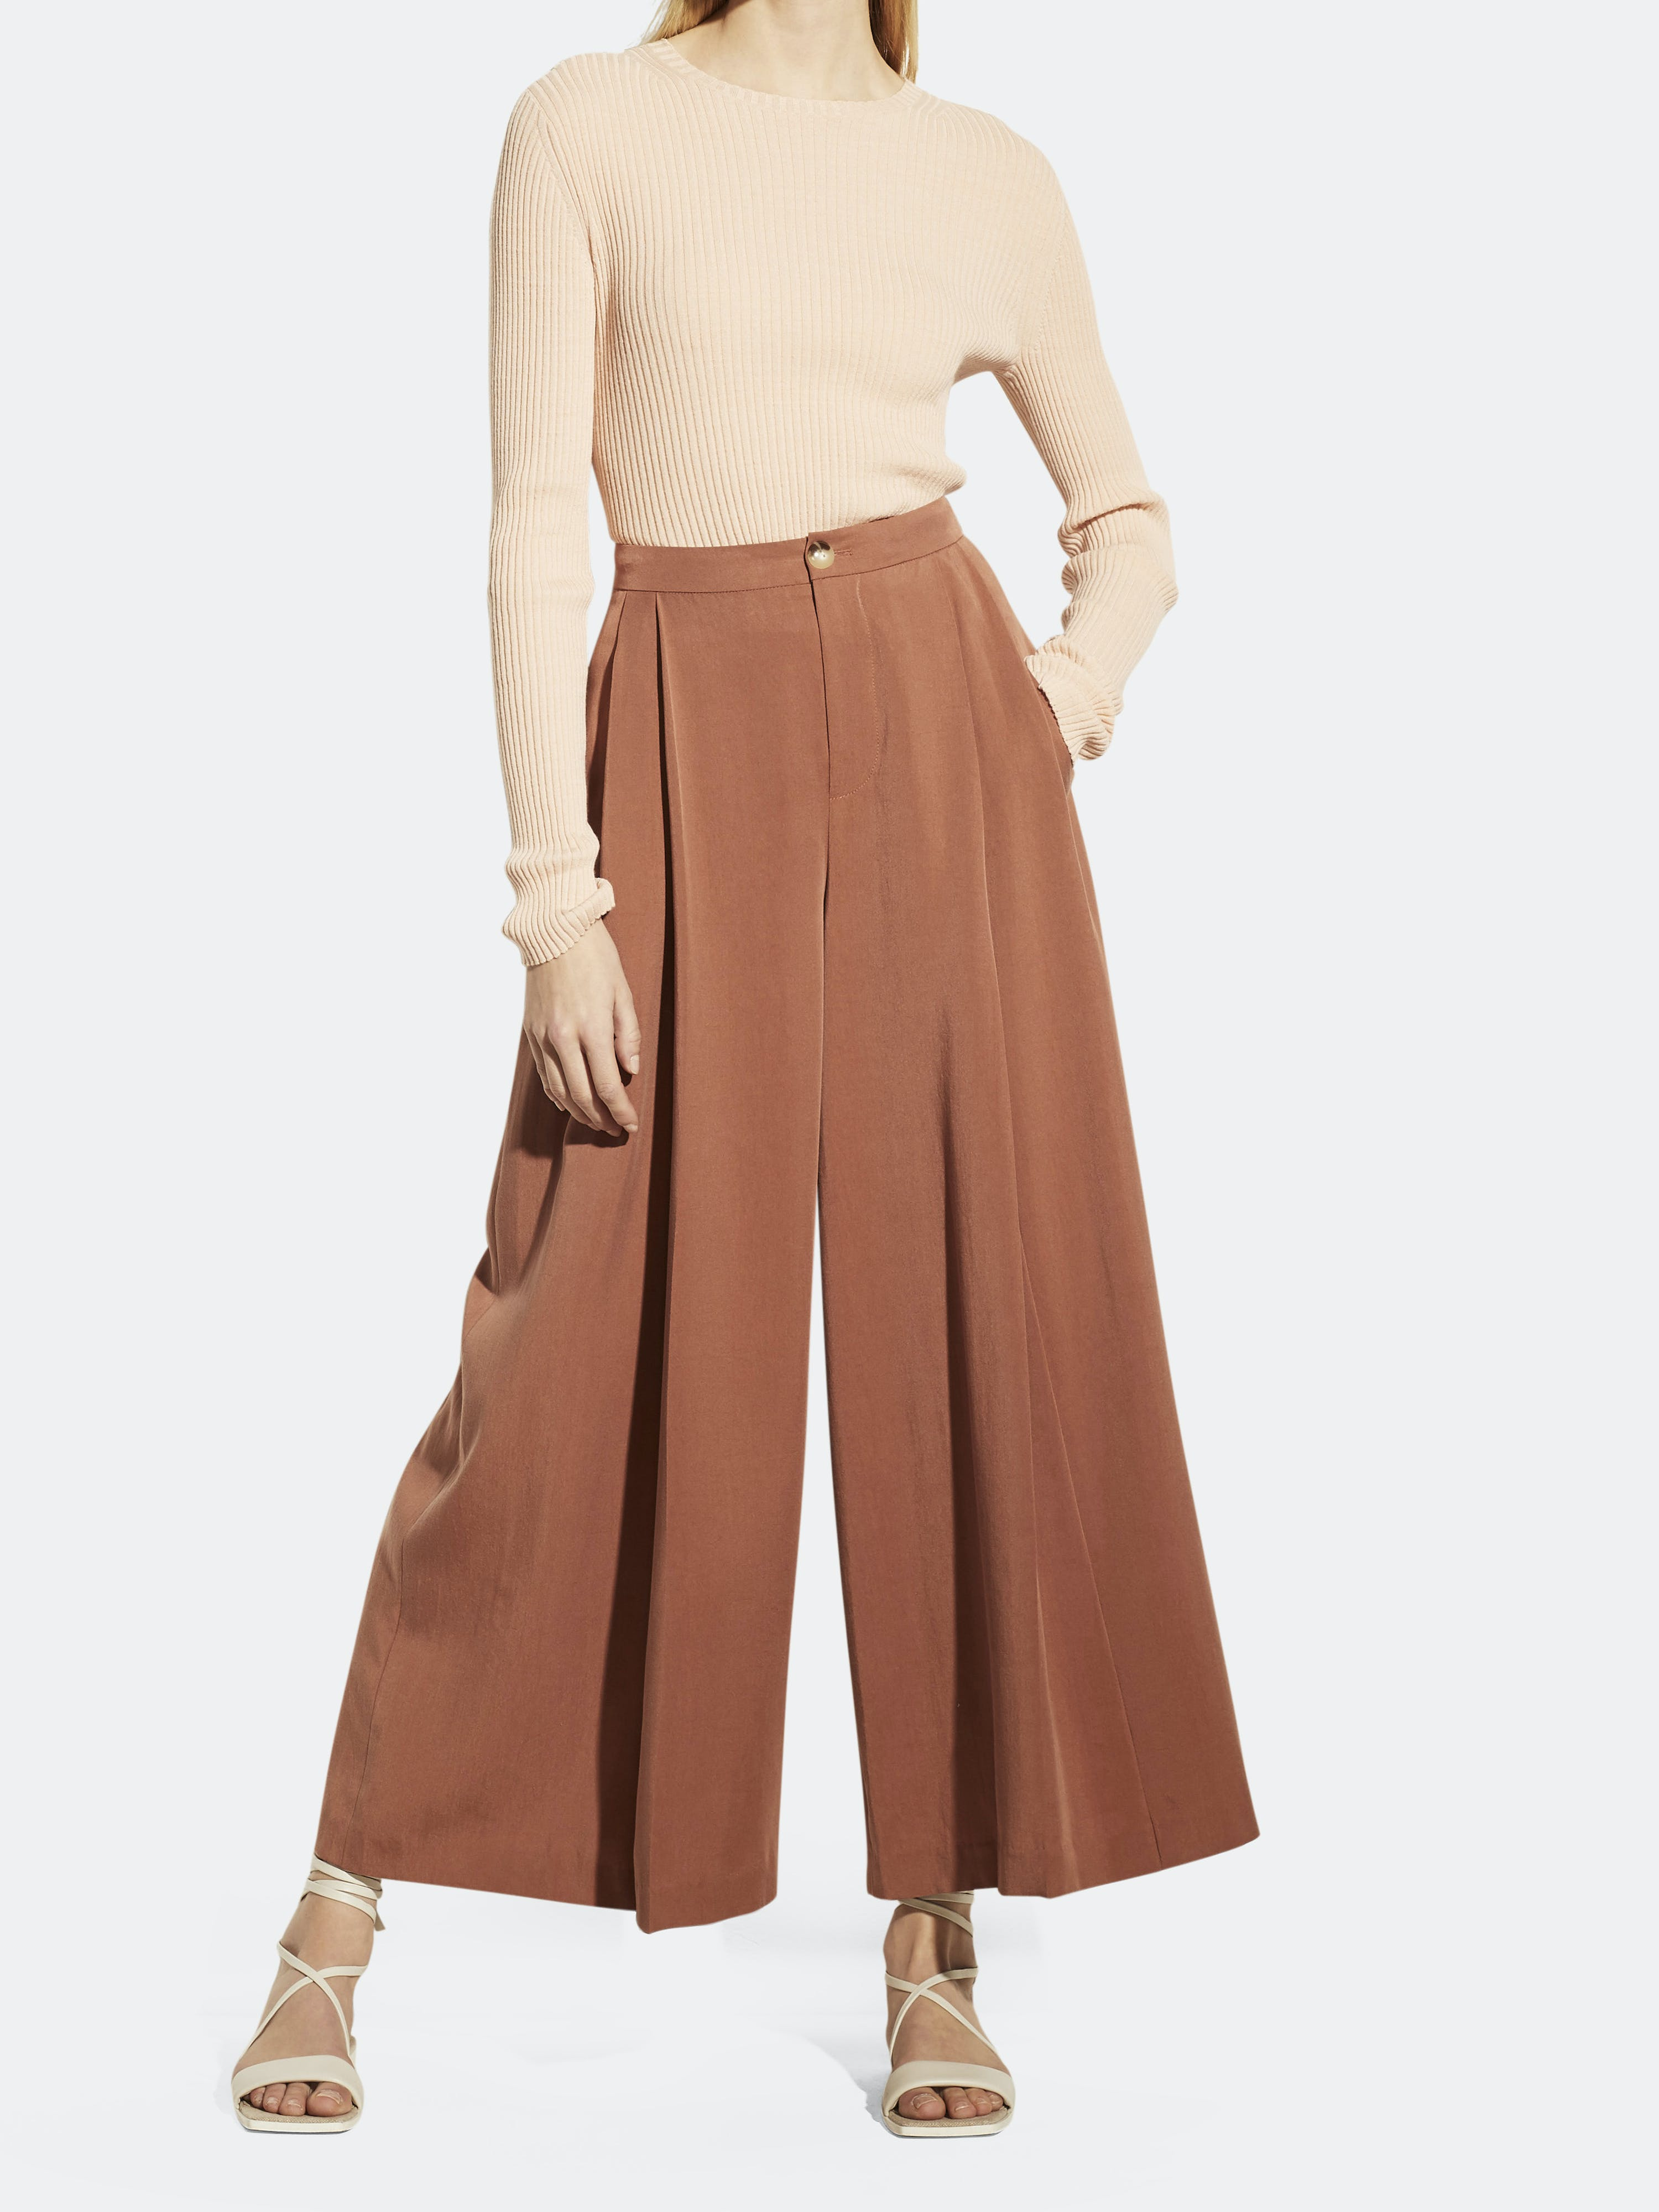 Vince VINCE HIGH RISE ANKLE LENGTH PLEATED CULOTTE